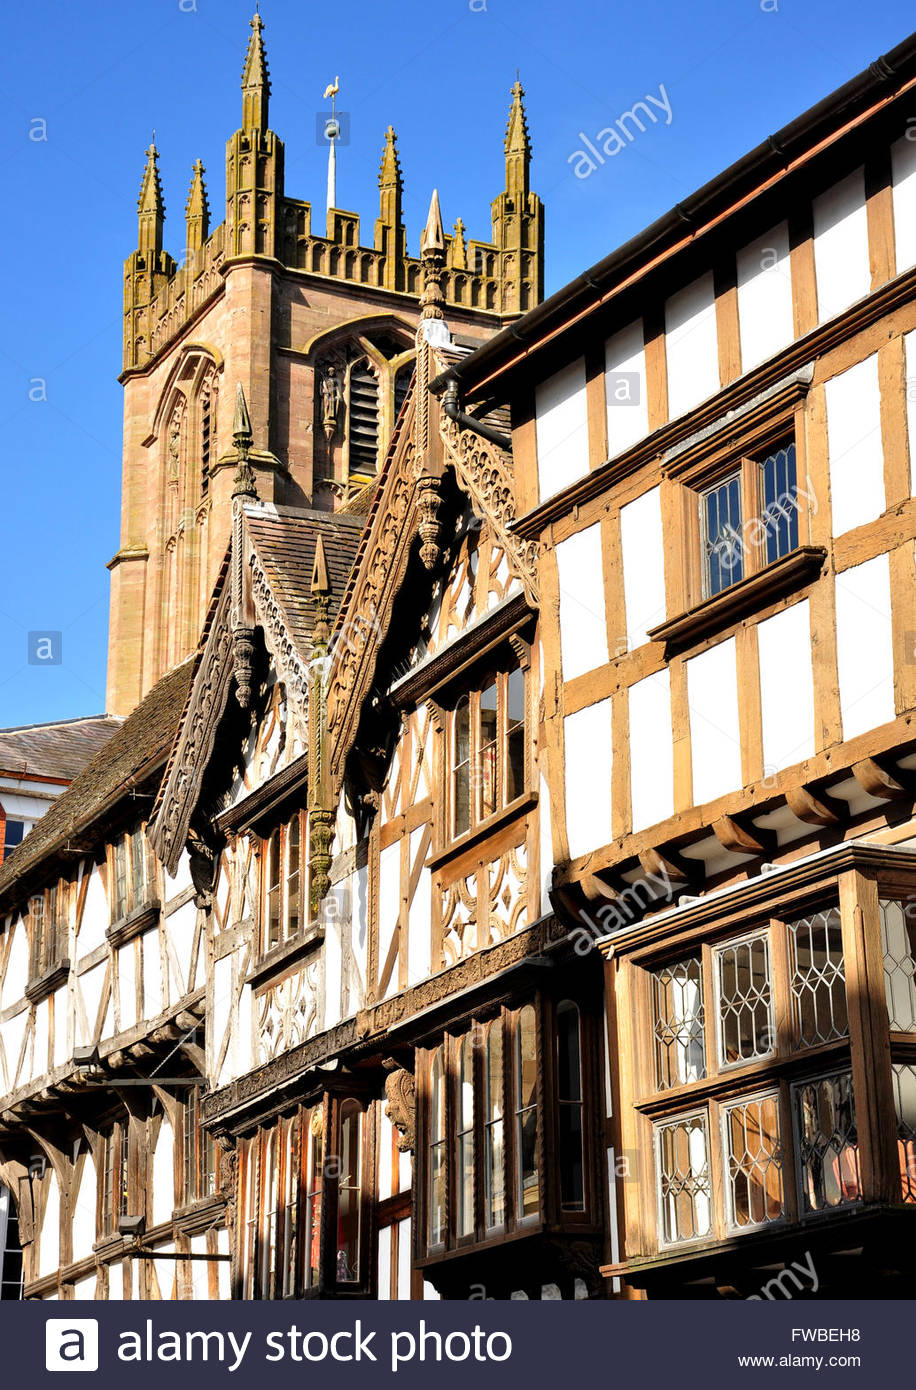 St Laurence's parish church in Ludlow, UK towers over some of the historic half timbered buildings on Broad - Stock Image